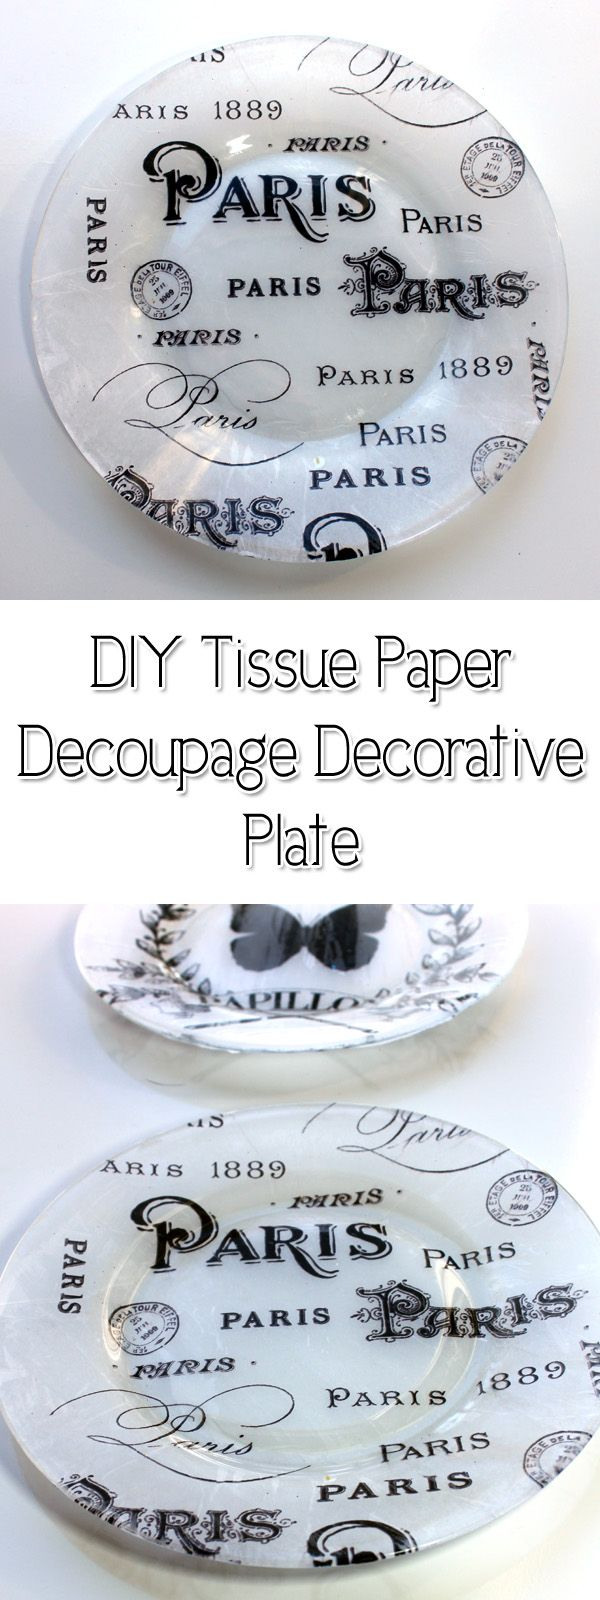 DIY Tissue Paper Decoupage Decorative Plate! - The Graphics Fairy